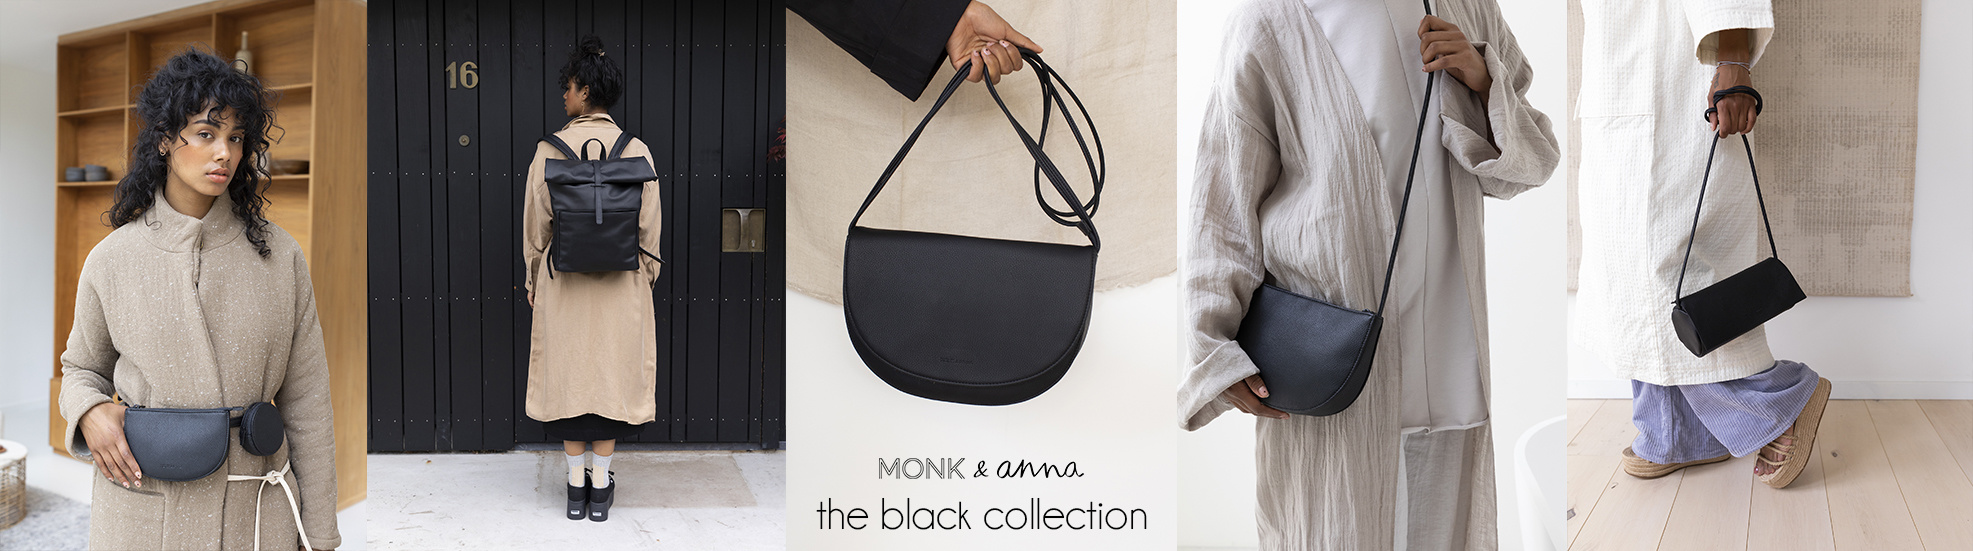 monk-and-anna-bags-black-story